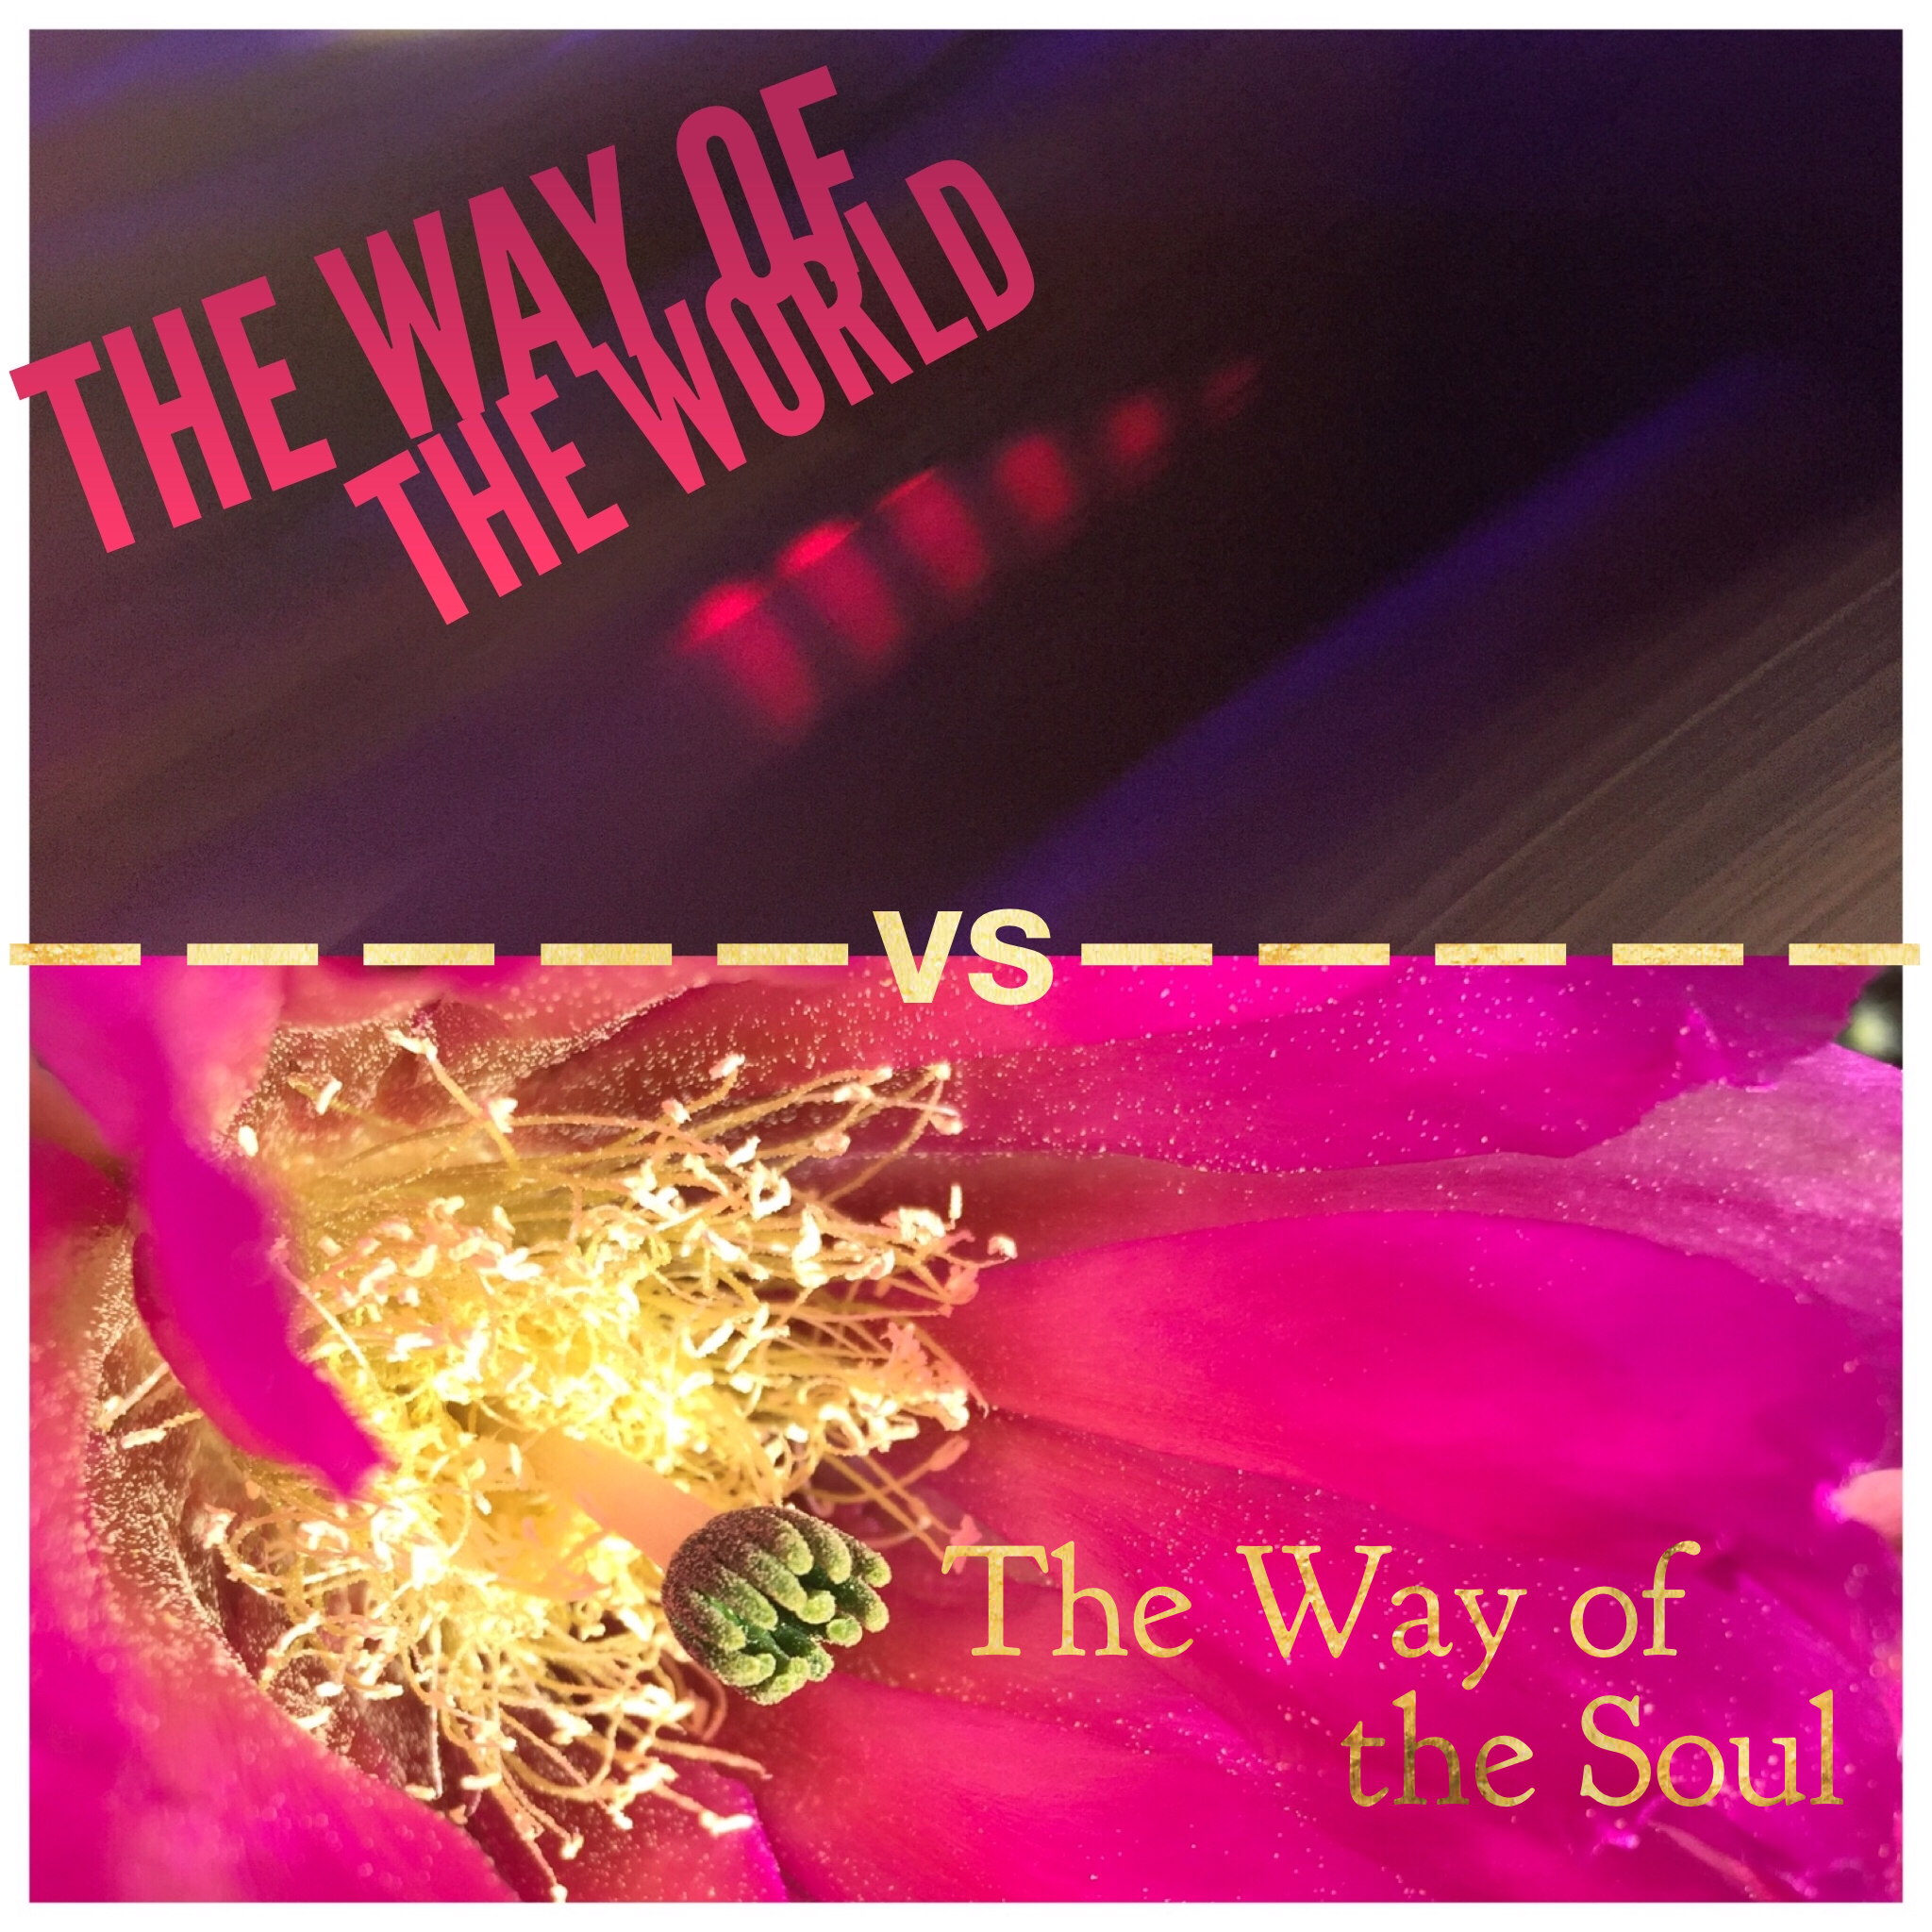 Way of World -vs- Way of Soul